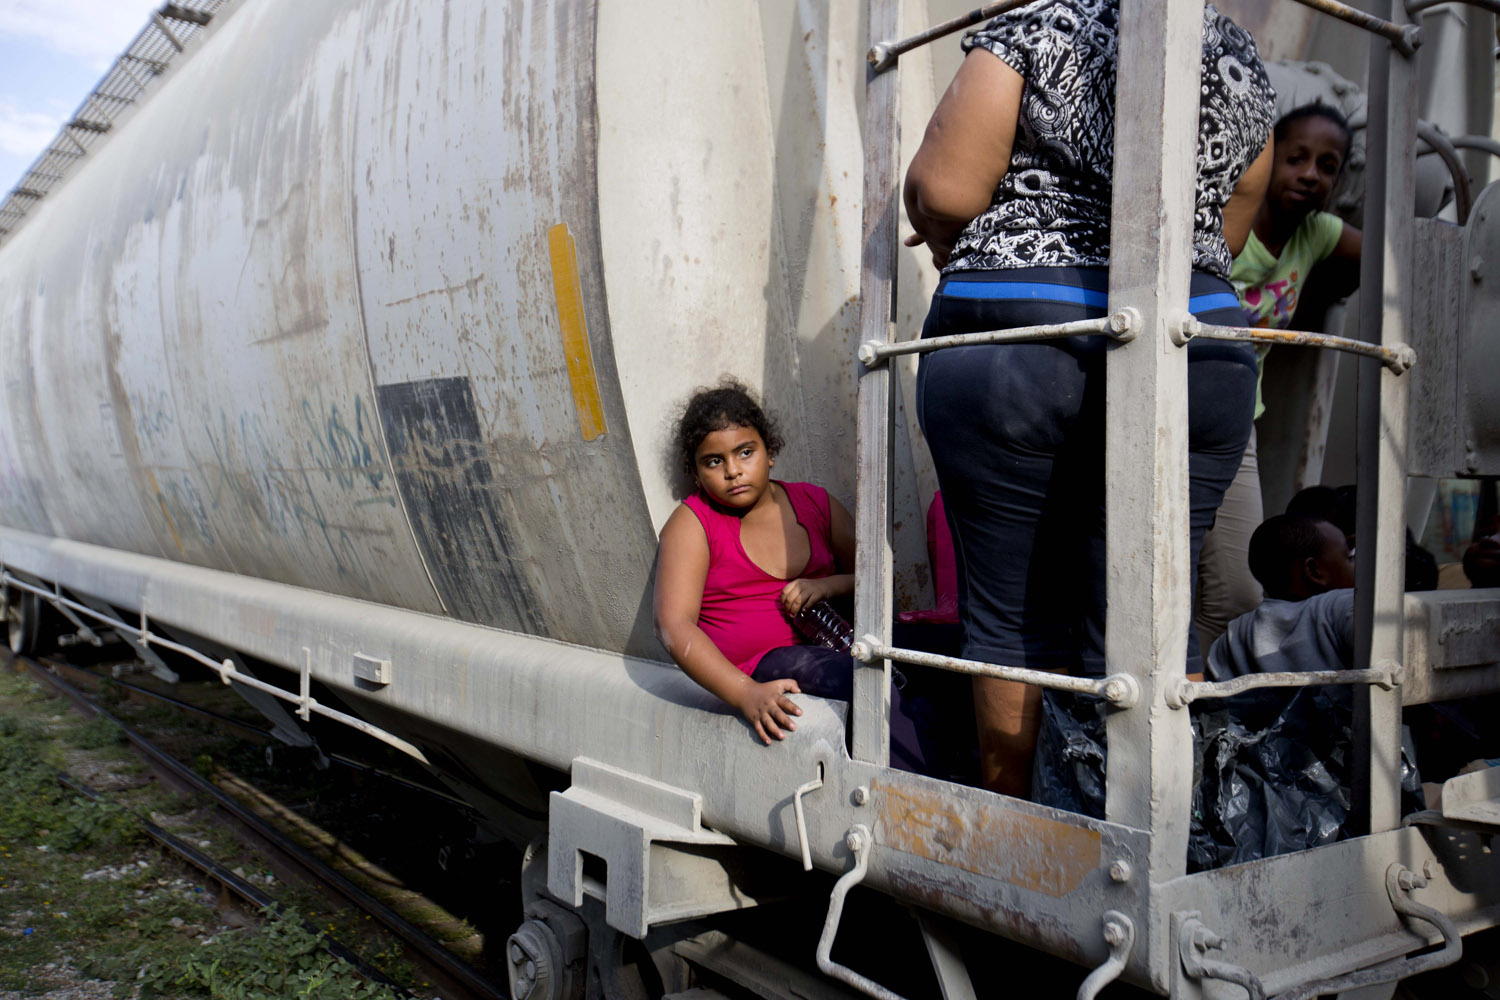 Jul. 12, 2014. A young migrant girl waits for a freight train to depart on her way to the U.S. border, in Ixtepec, Mexico. The number of unaccompanied minors detained on the U.S. border has more than tripled since 2011.